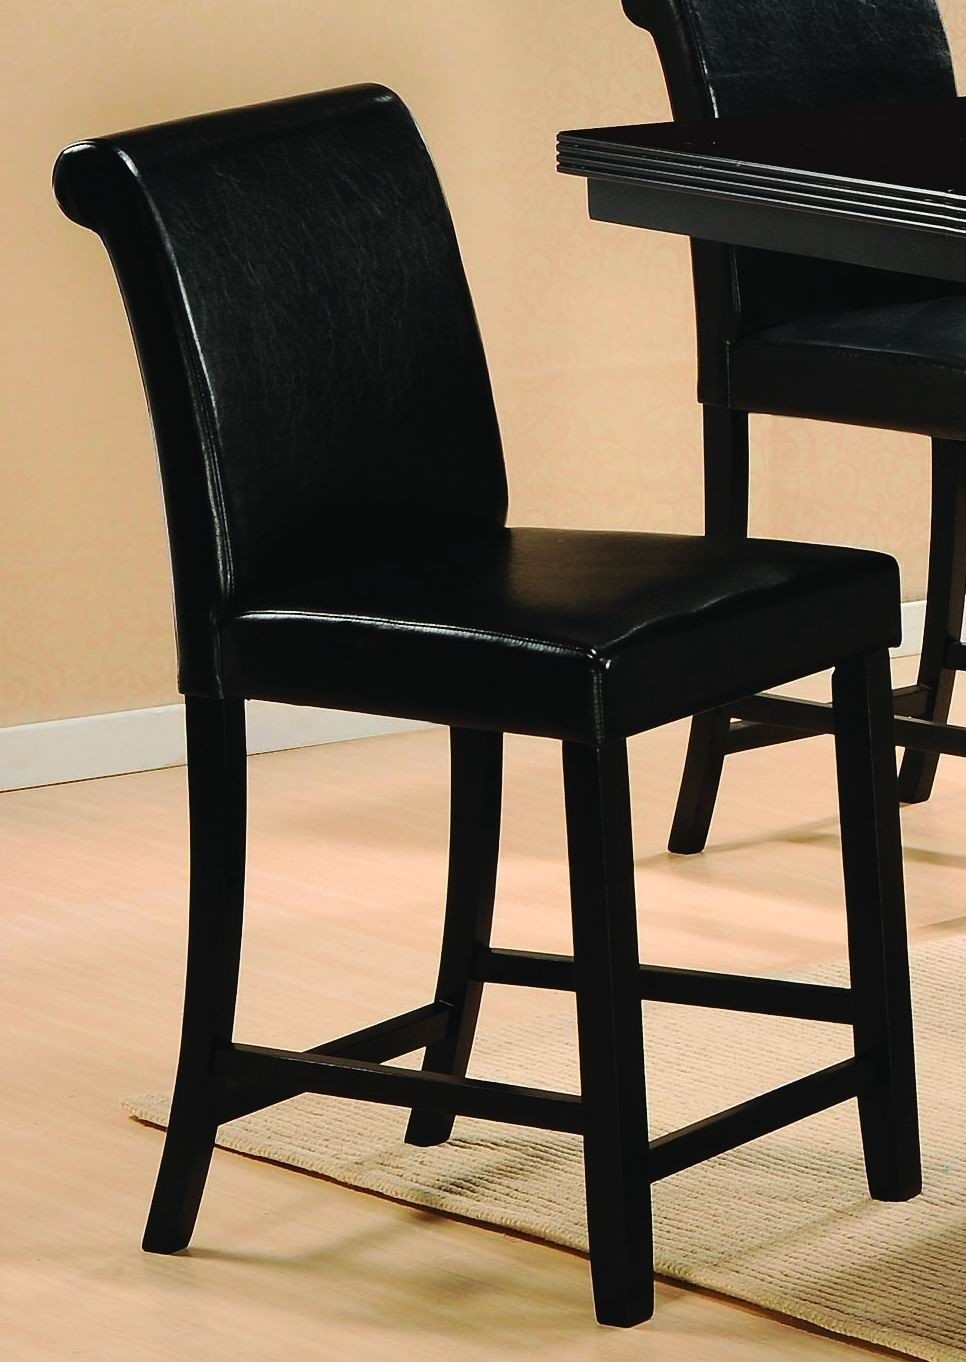 Counter Height Nook : Papario nook Counter Height Chair from Homelegance (5351-24) Coleman ...